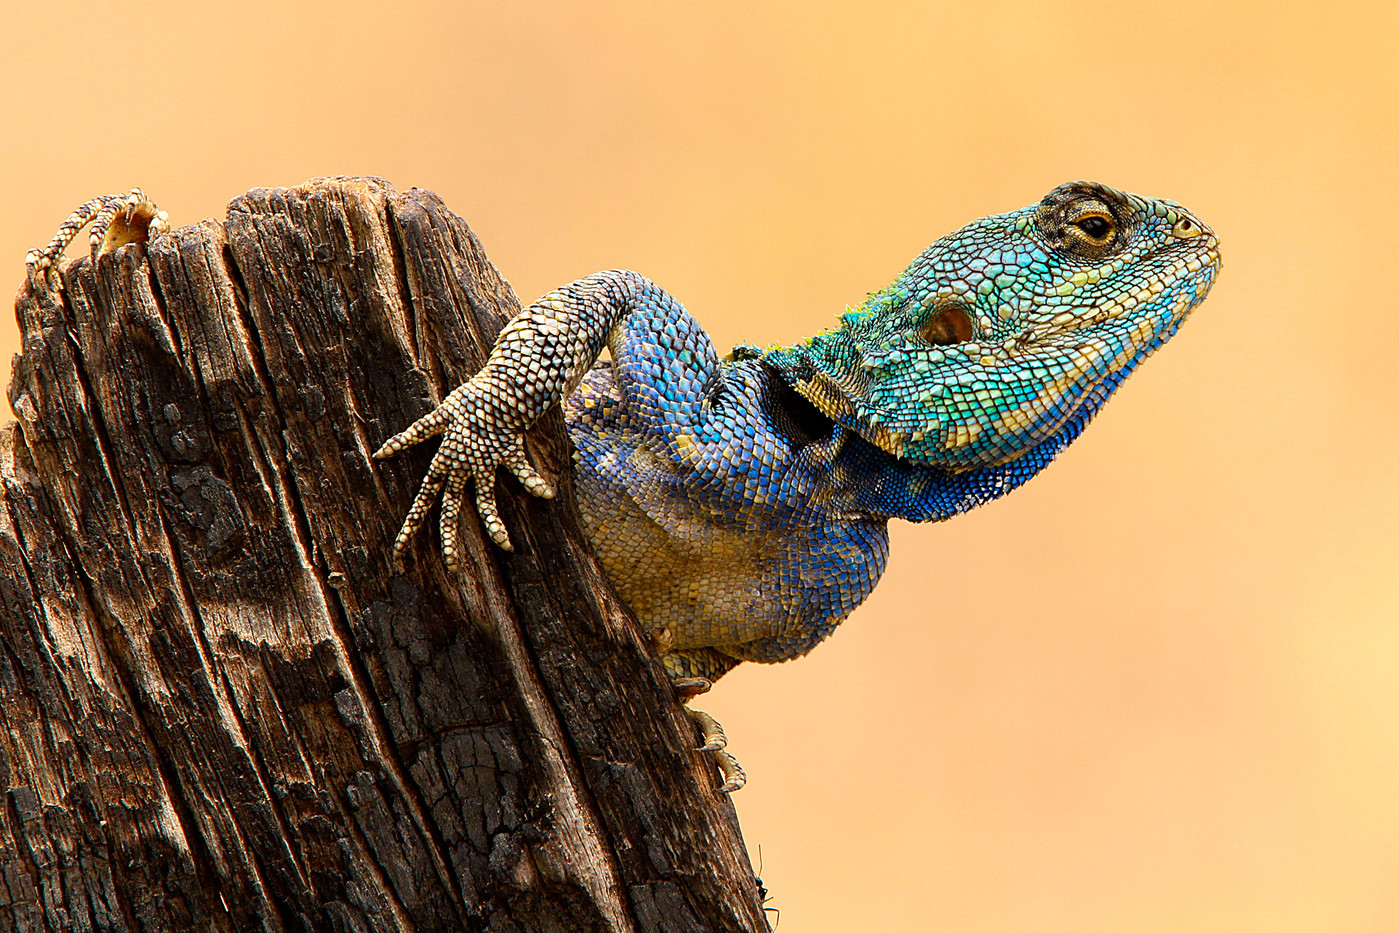 Male Tree Agama in the Ngorongoro Conservation Area, Tanzania